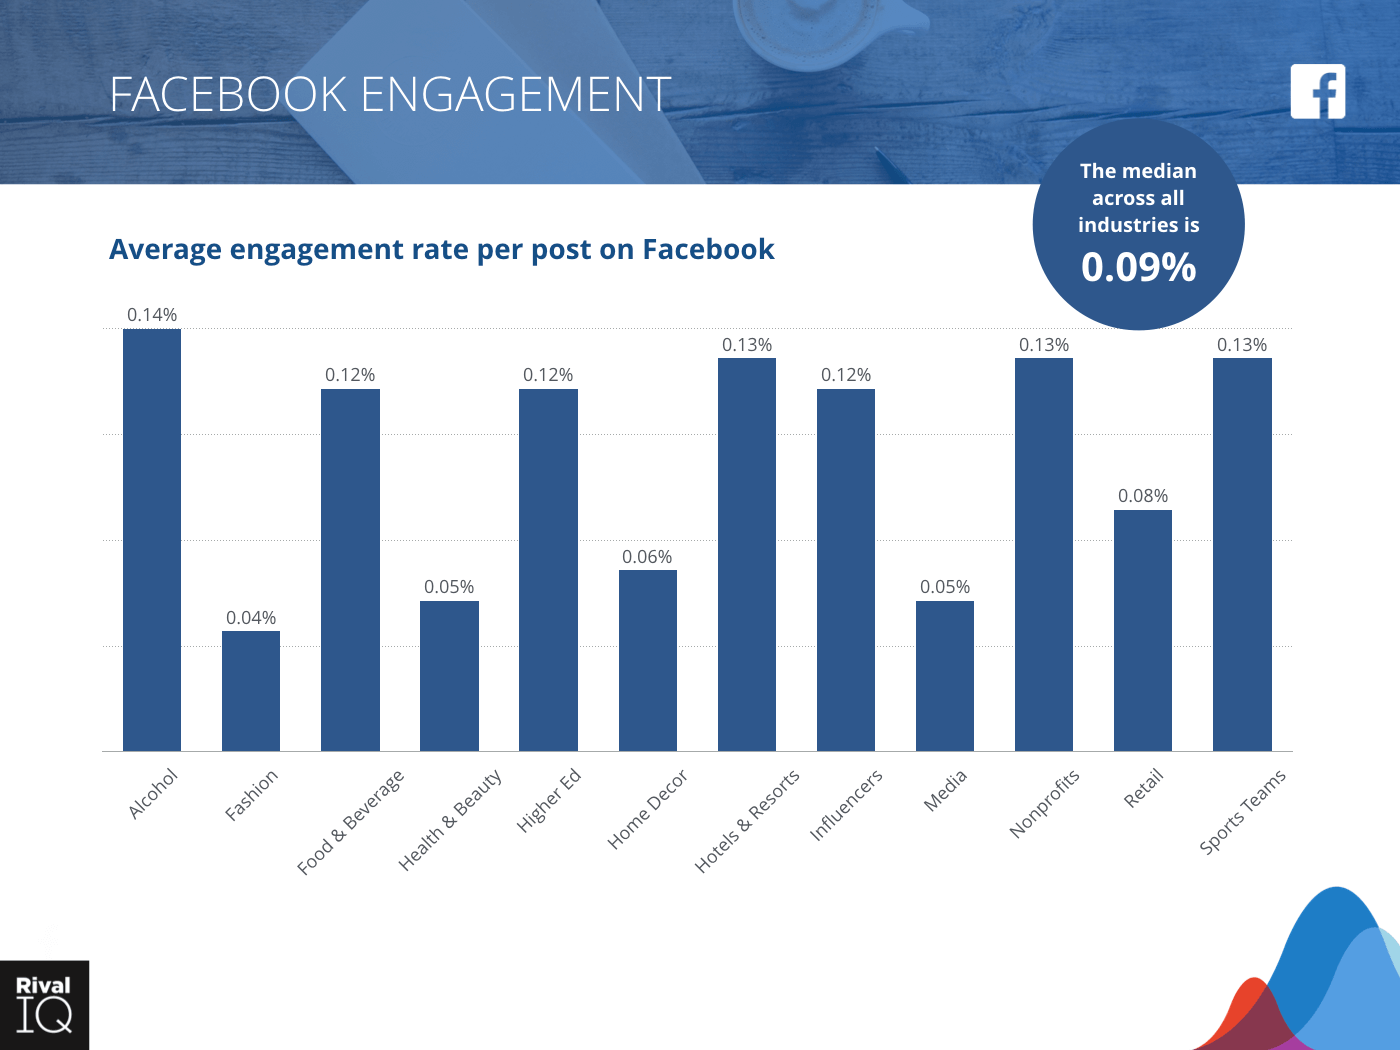 Bar graph of Facebook Engagement across all industries in this study with a median engagement rate of .09%